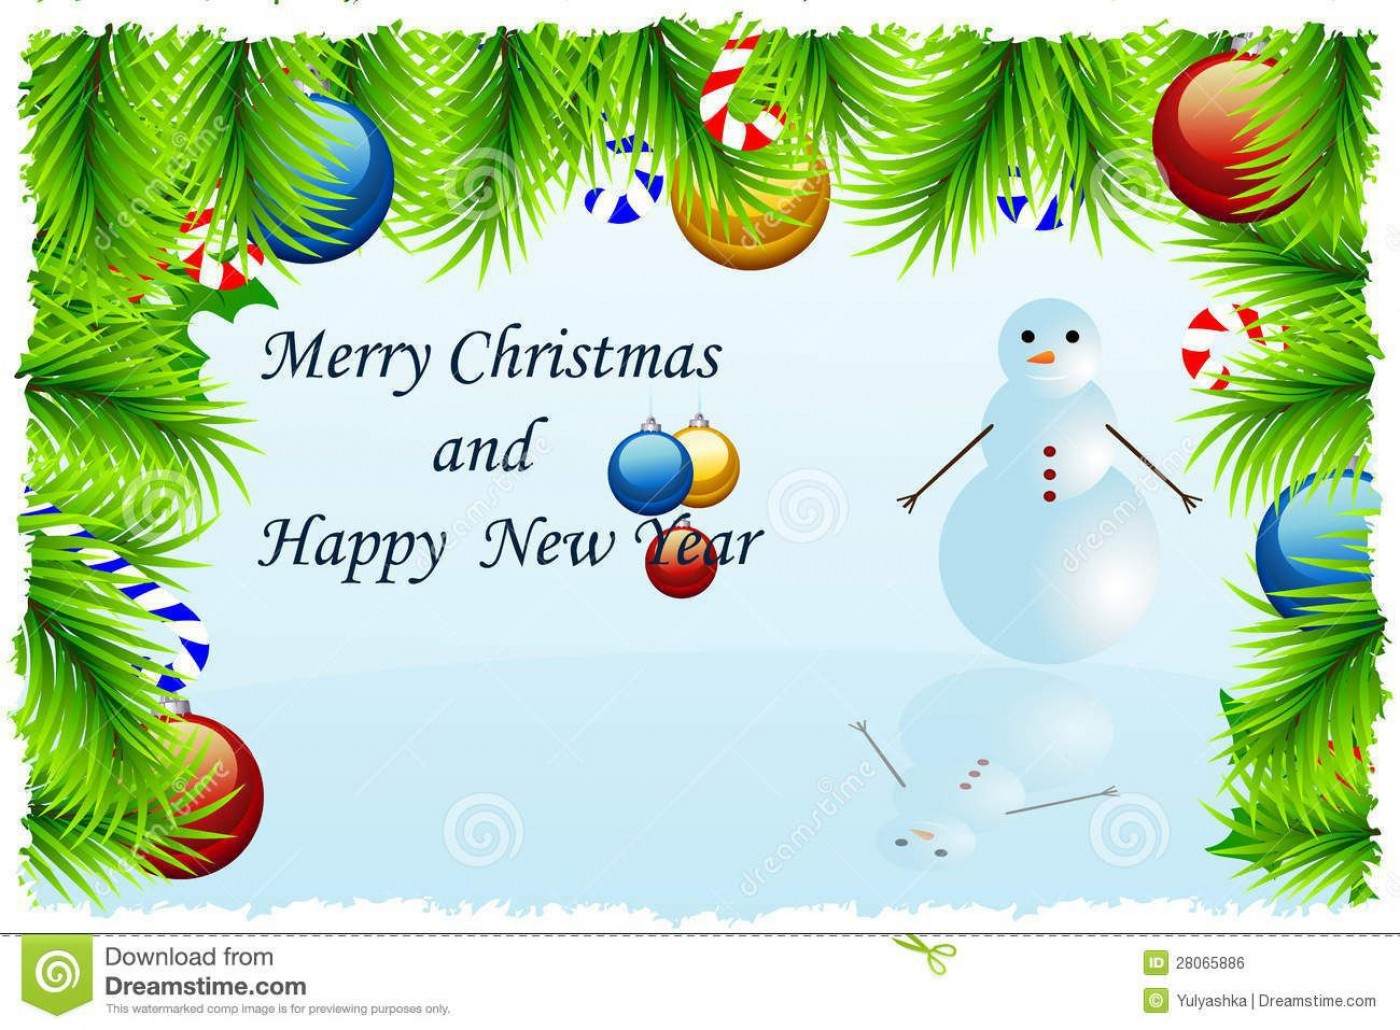 002 Fearsome Christma Card Template Free Download Inspiration  Photo Xma Place1400